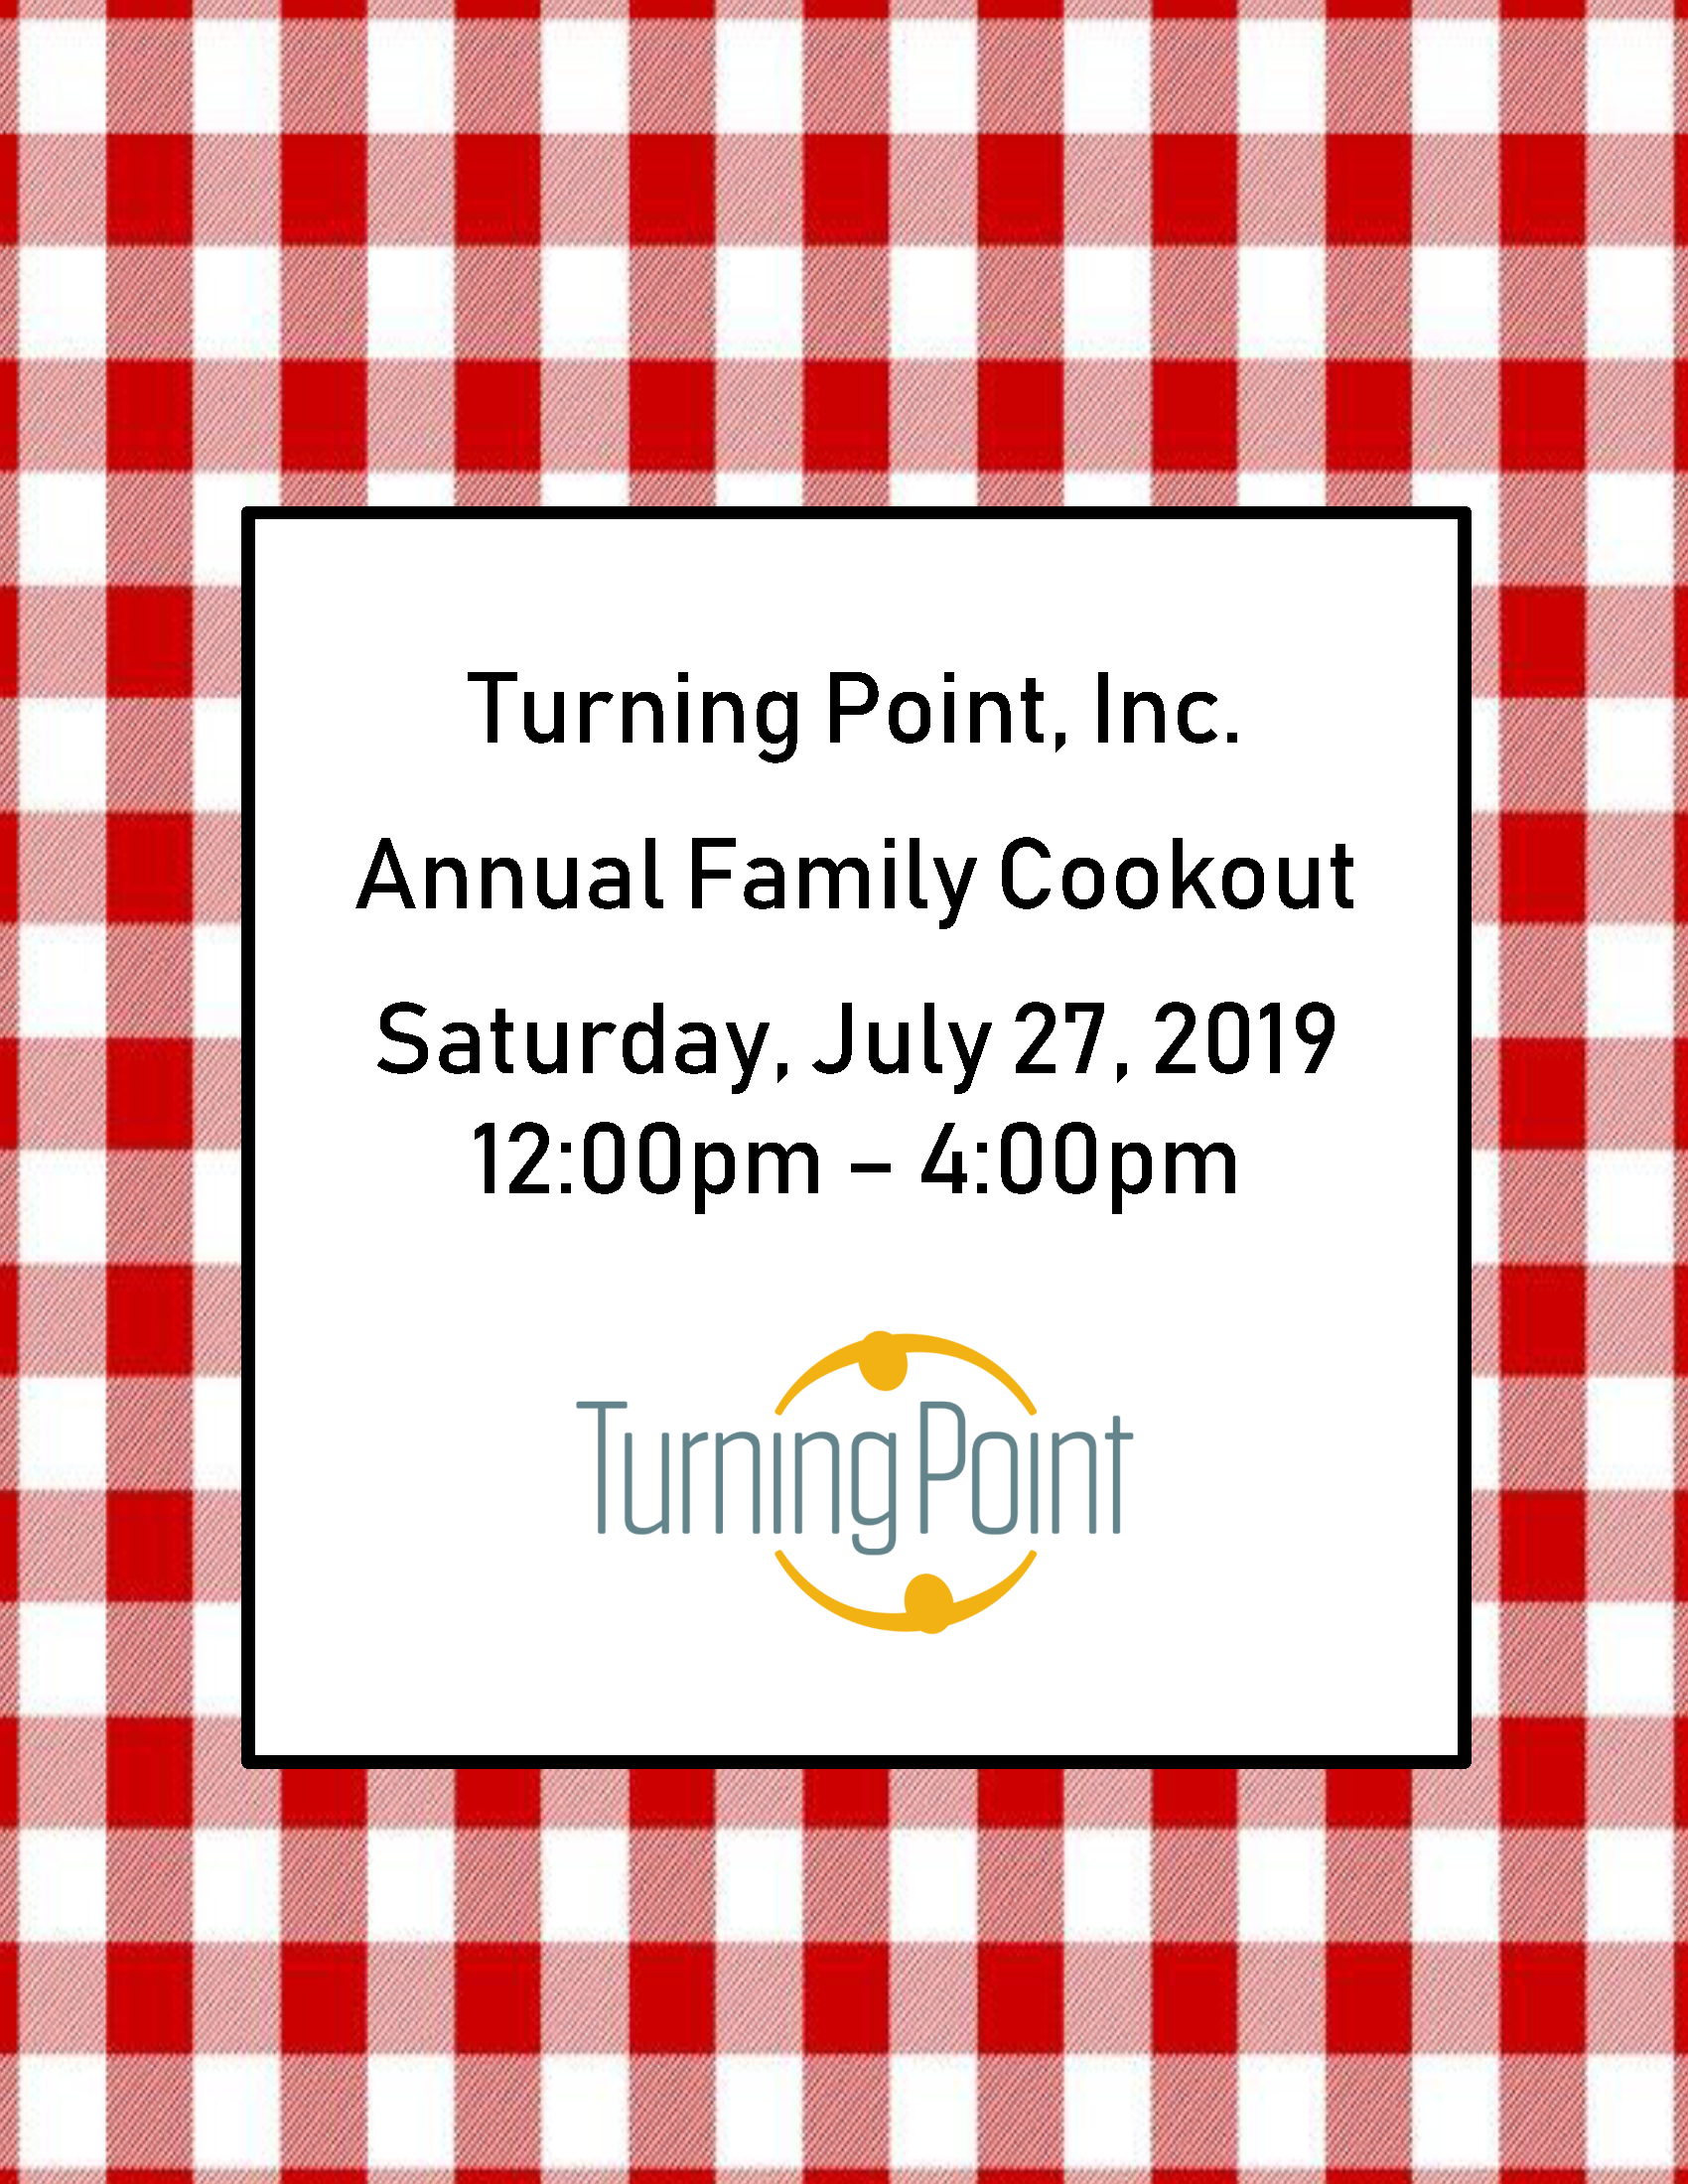 2019 Turning Point Cookout